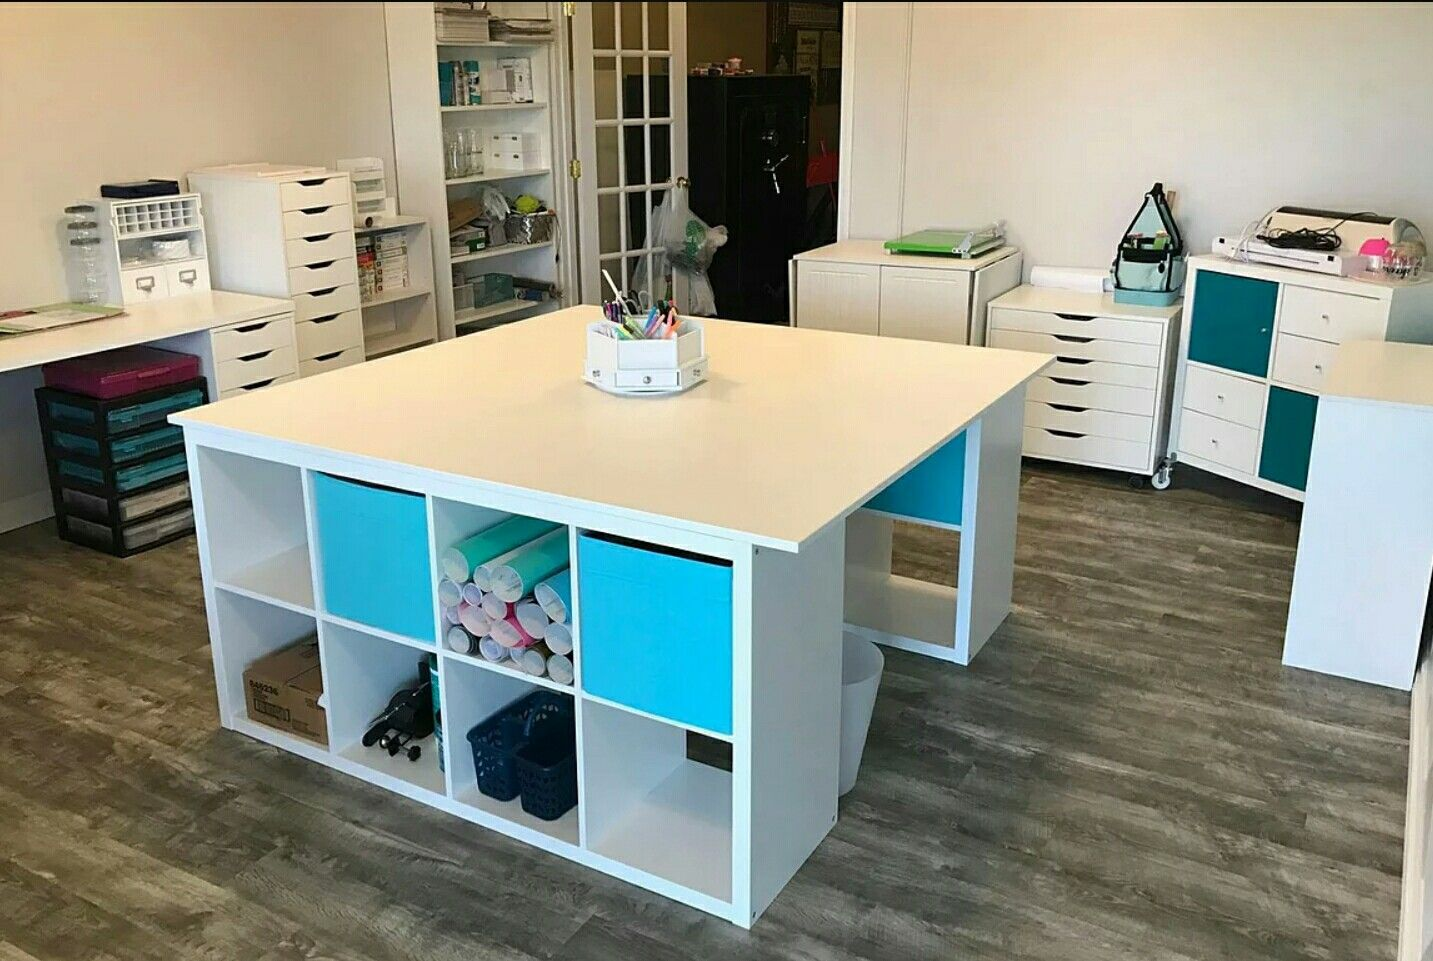 Craft Table Made From Ikea Cubes Table Tops We Created The Center Island With 2 Kallax Un Craft Tables With Storage Craft Table Ikea Craft Storage Cabinets